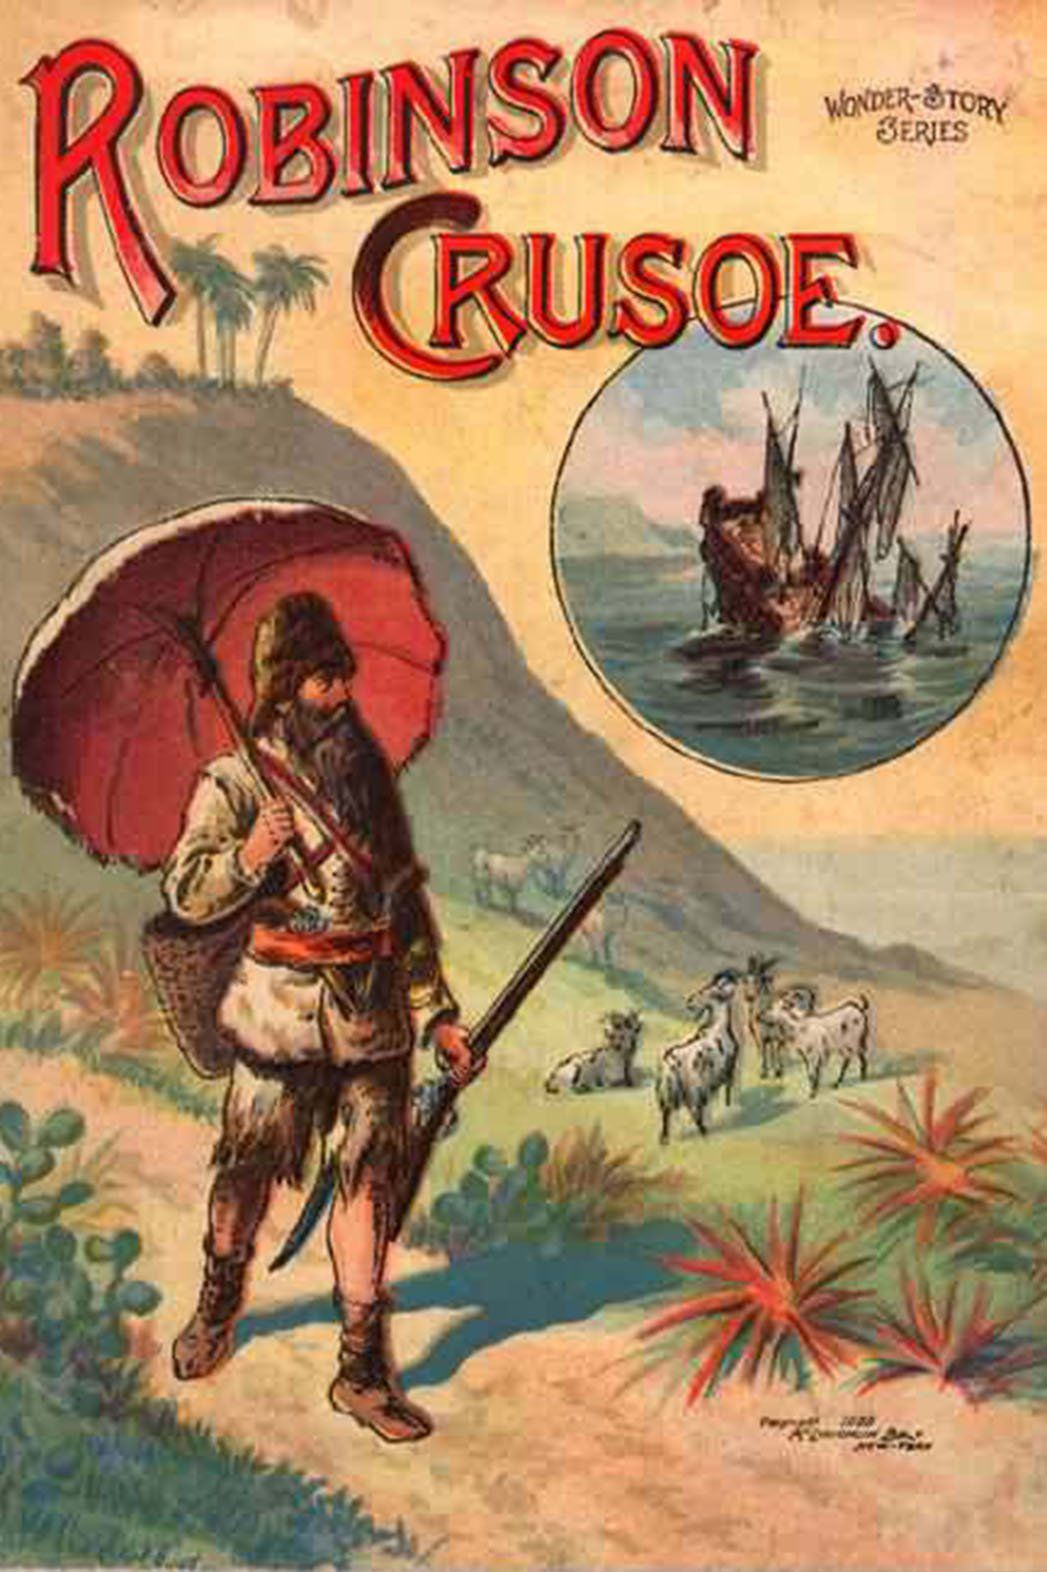 Robinson Crusoe With Images Classic Books Classic Childrens